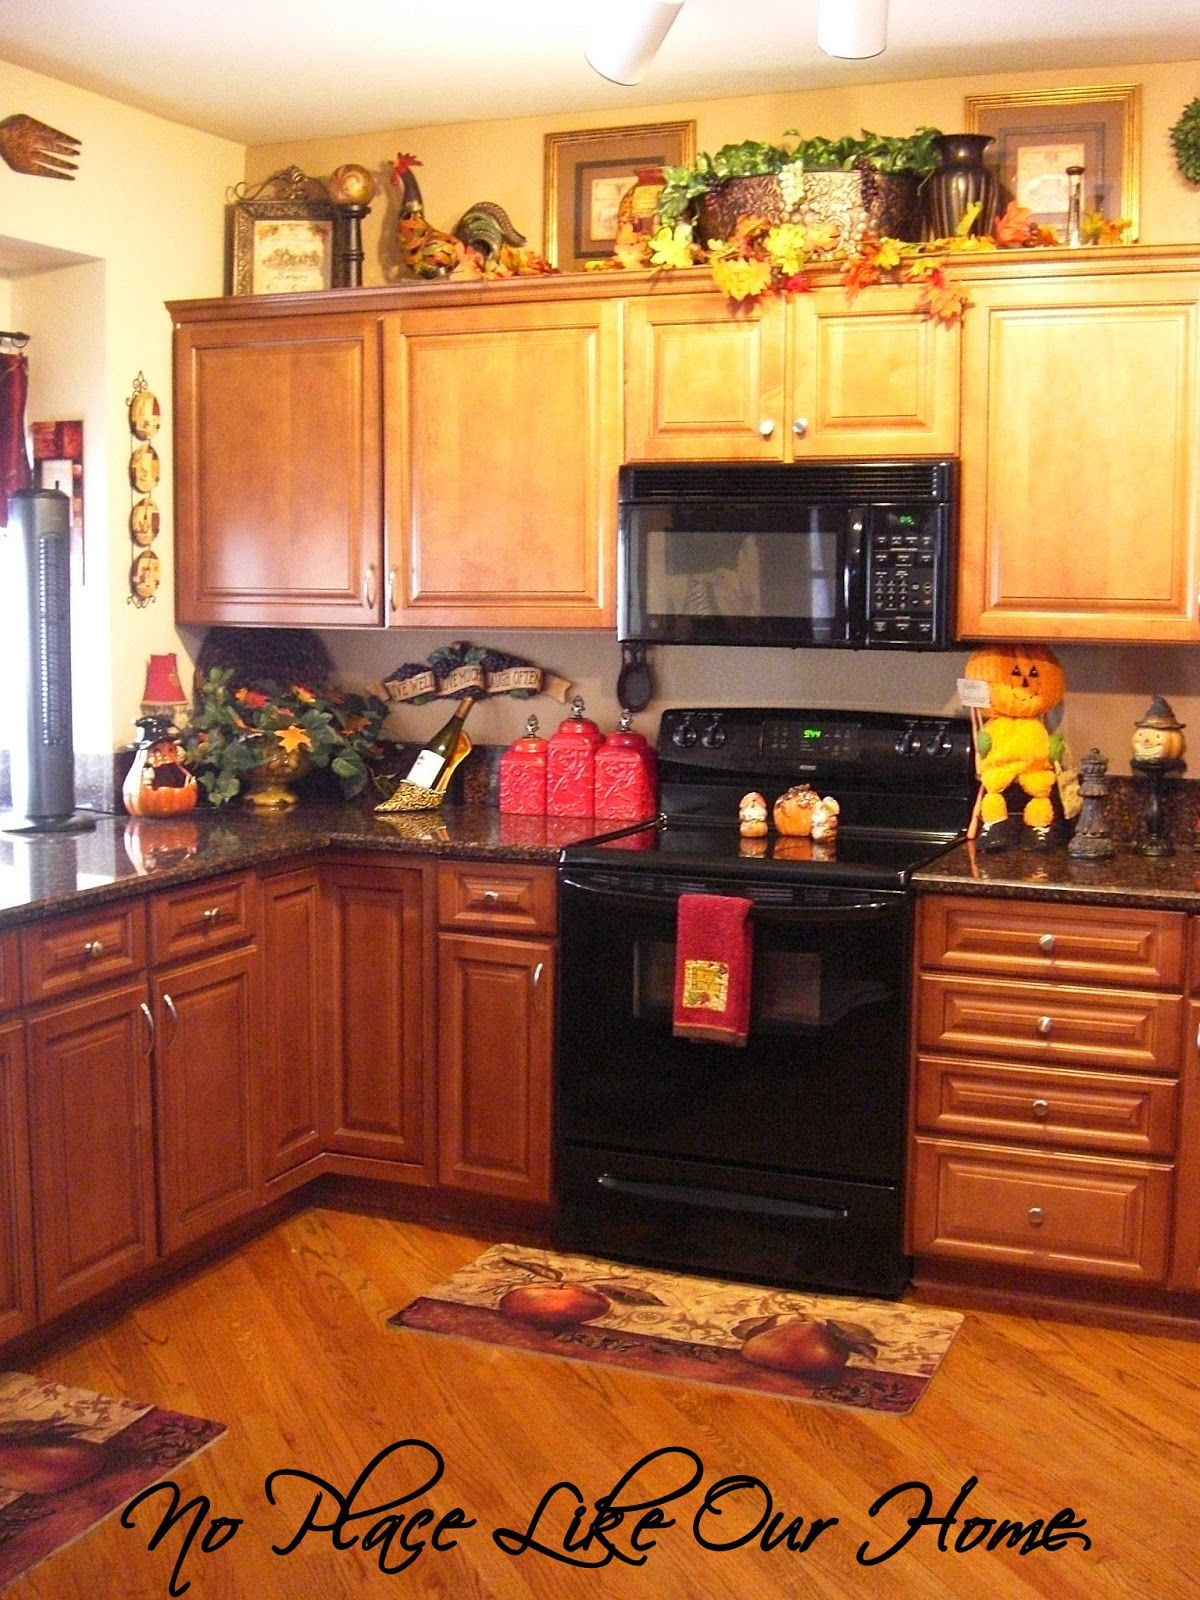 No Place Like Our Home Fall In The Kitchen Kitchen Cabinets